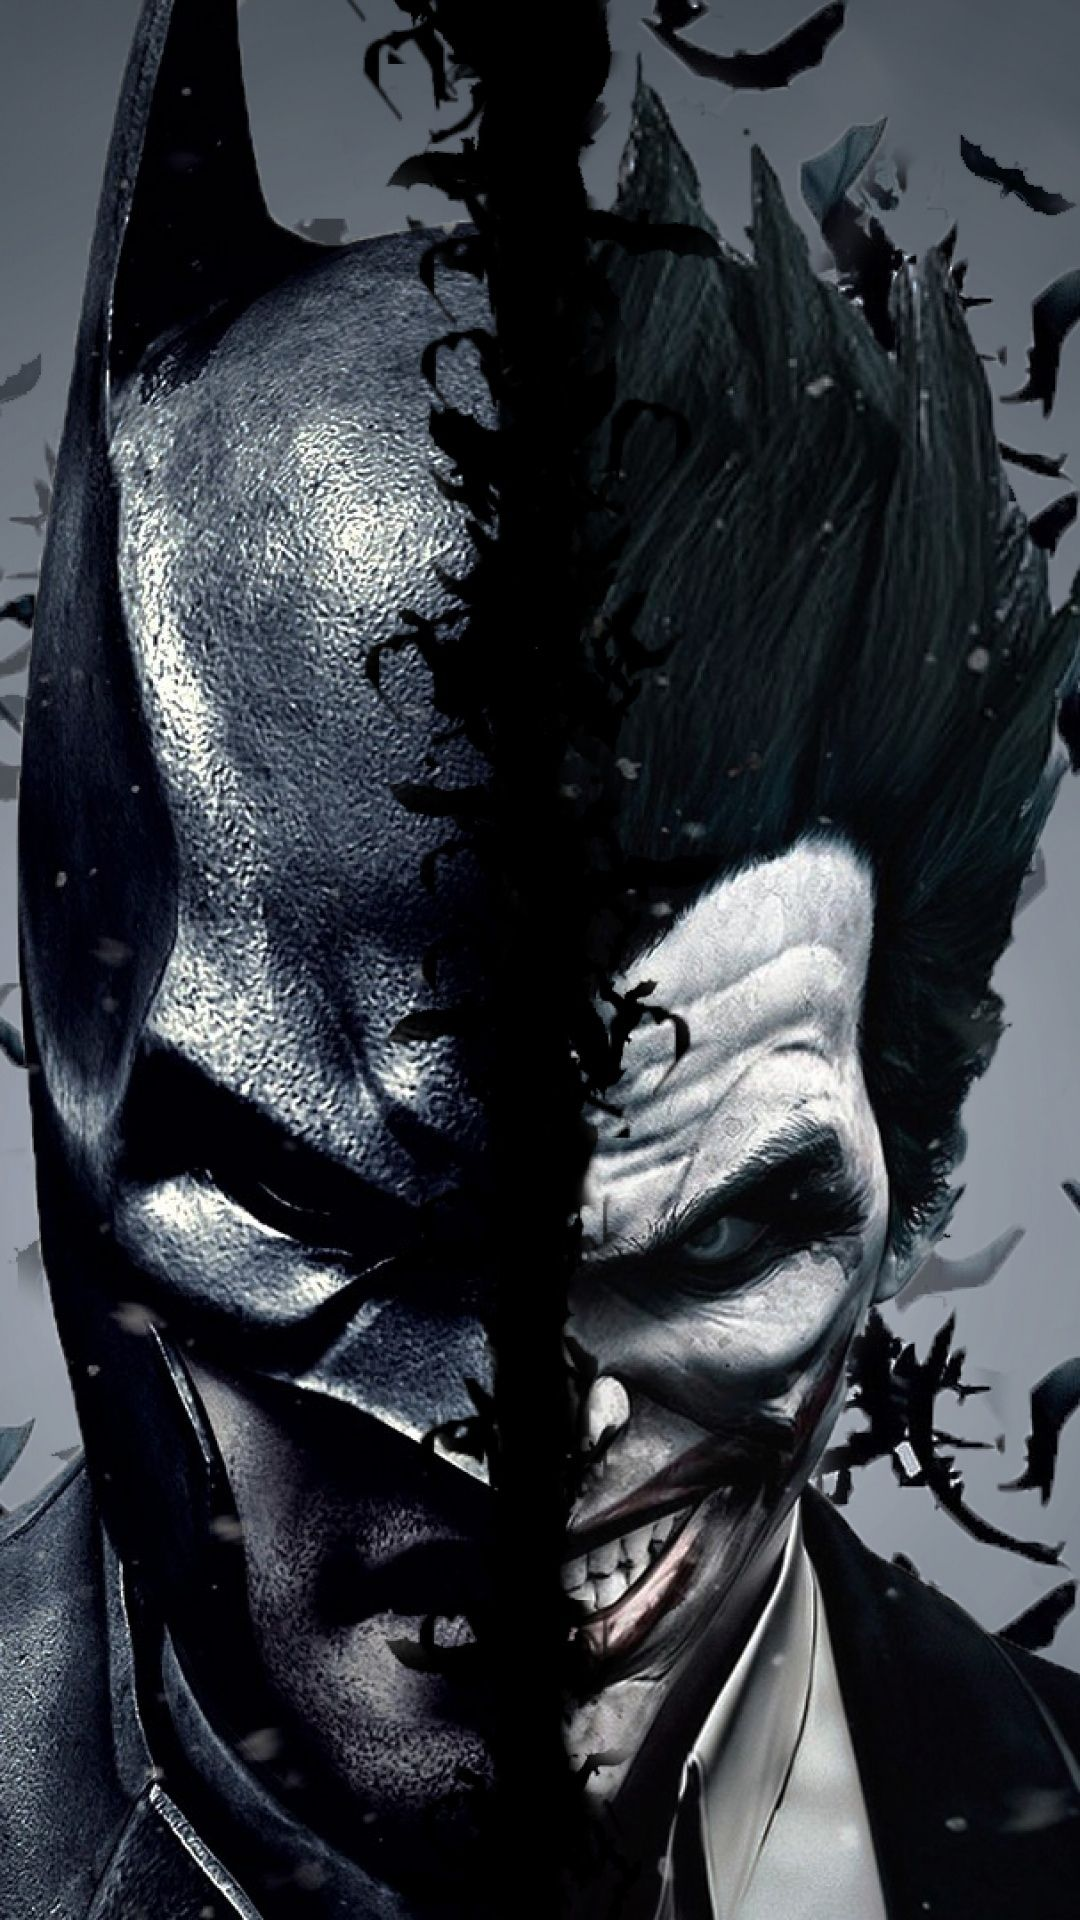 Batman And Joker Iphone Wallpaper Jnsrmgksb I Journal Imagenes